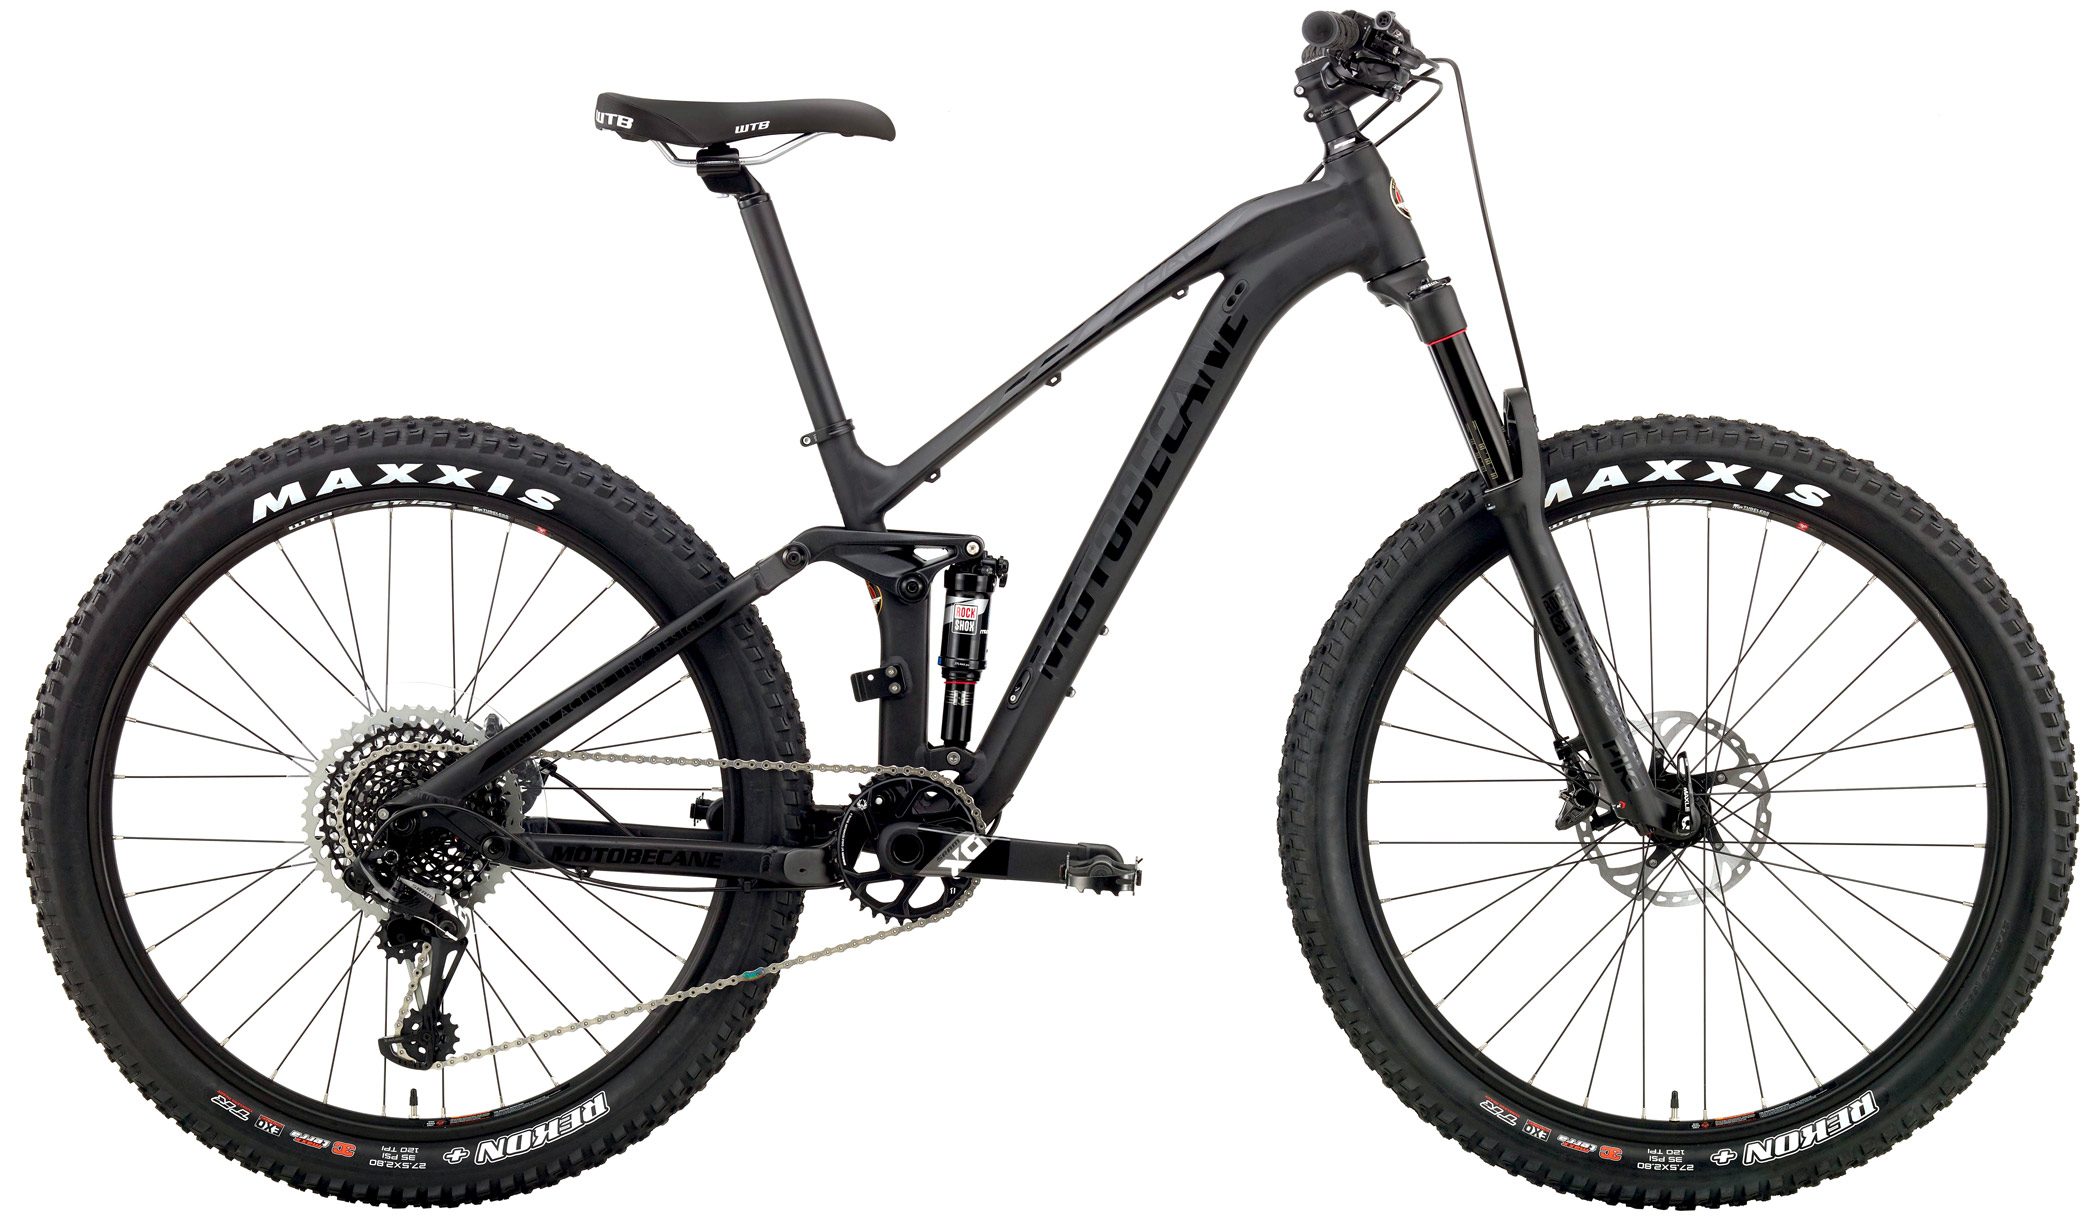 Save Up To 60 Off Ltd Qtys Of These 6 Inch 140mm Travel Full Suspension 27 5plus Boost